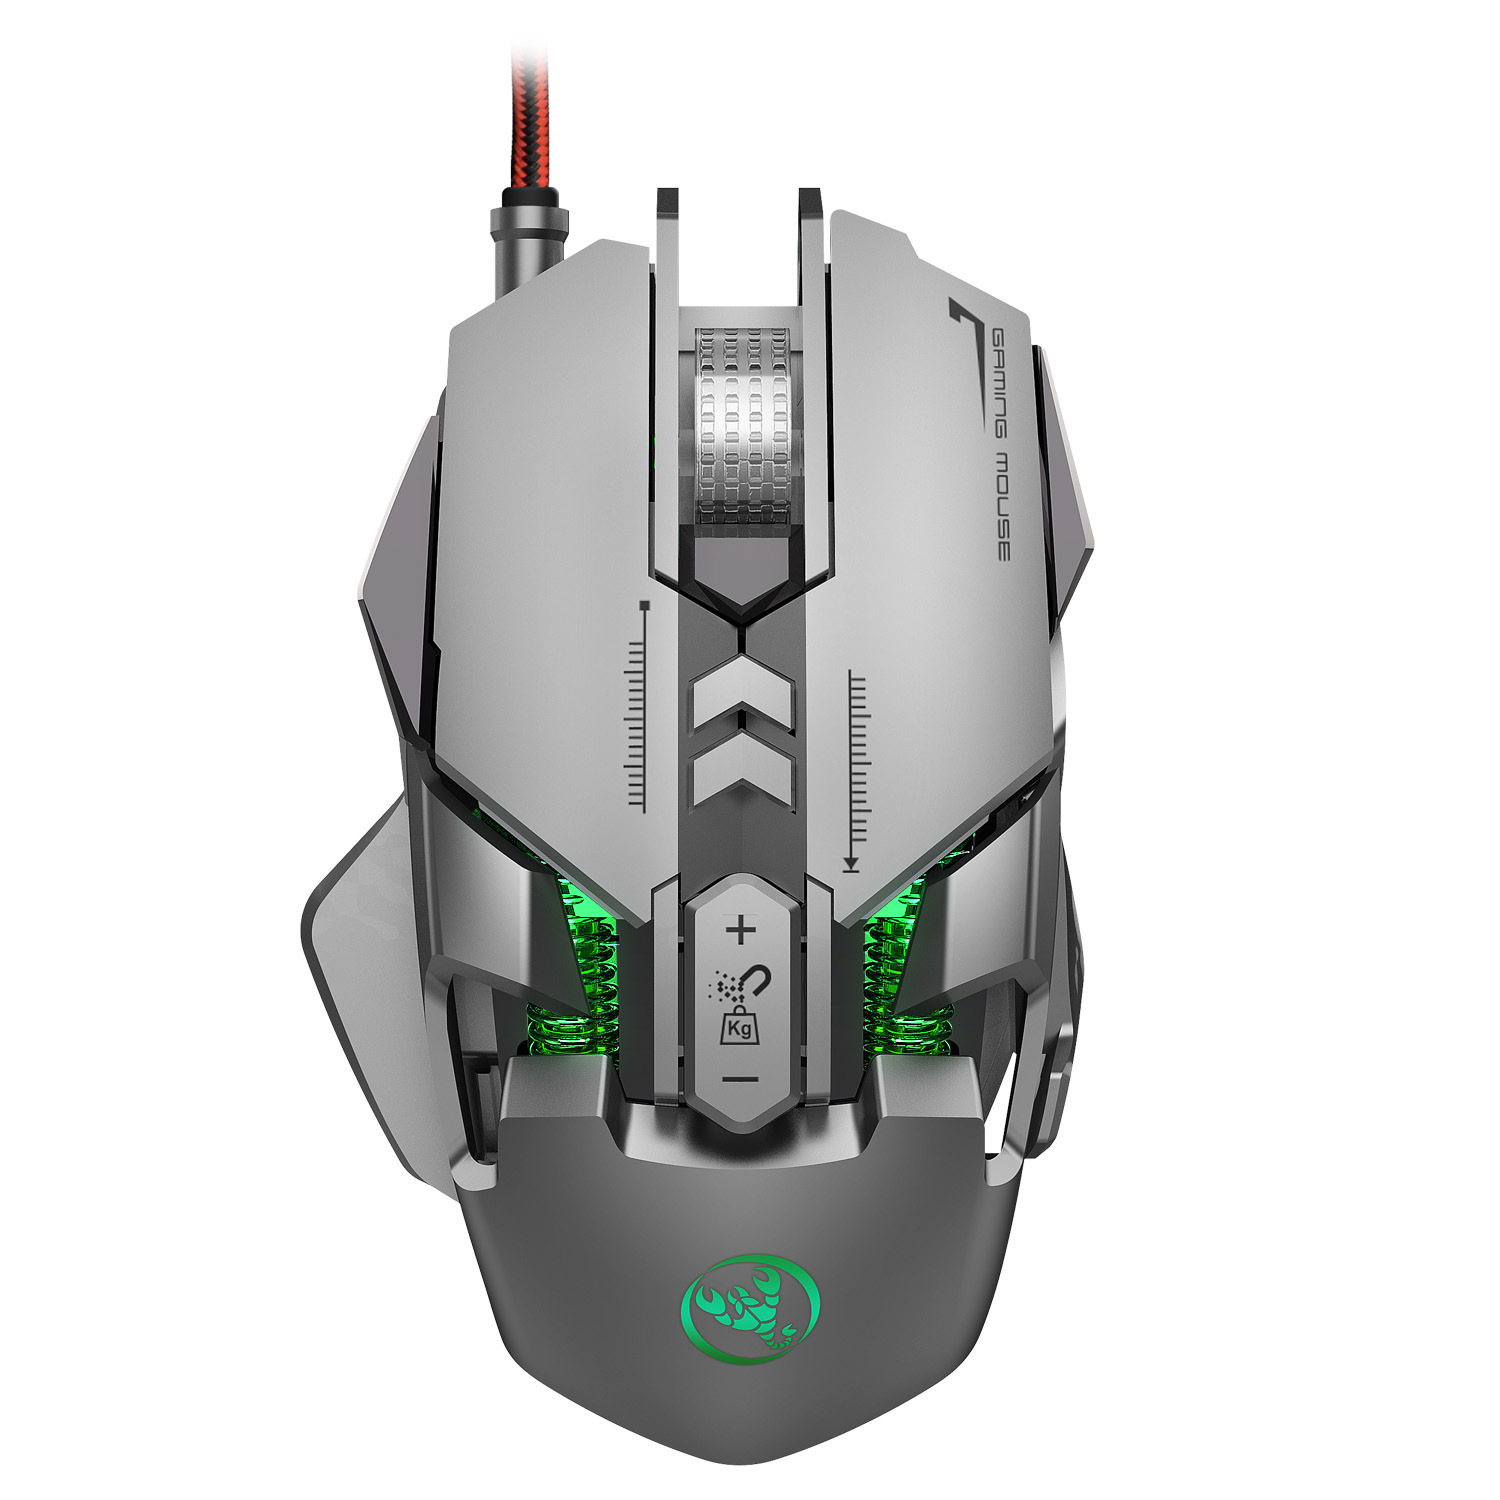 Mechanical Game Mouse J800 Luminous Adjustable Lighting Mouse DPI Max 6400 mouse